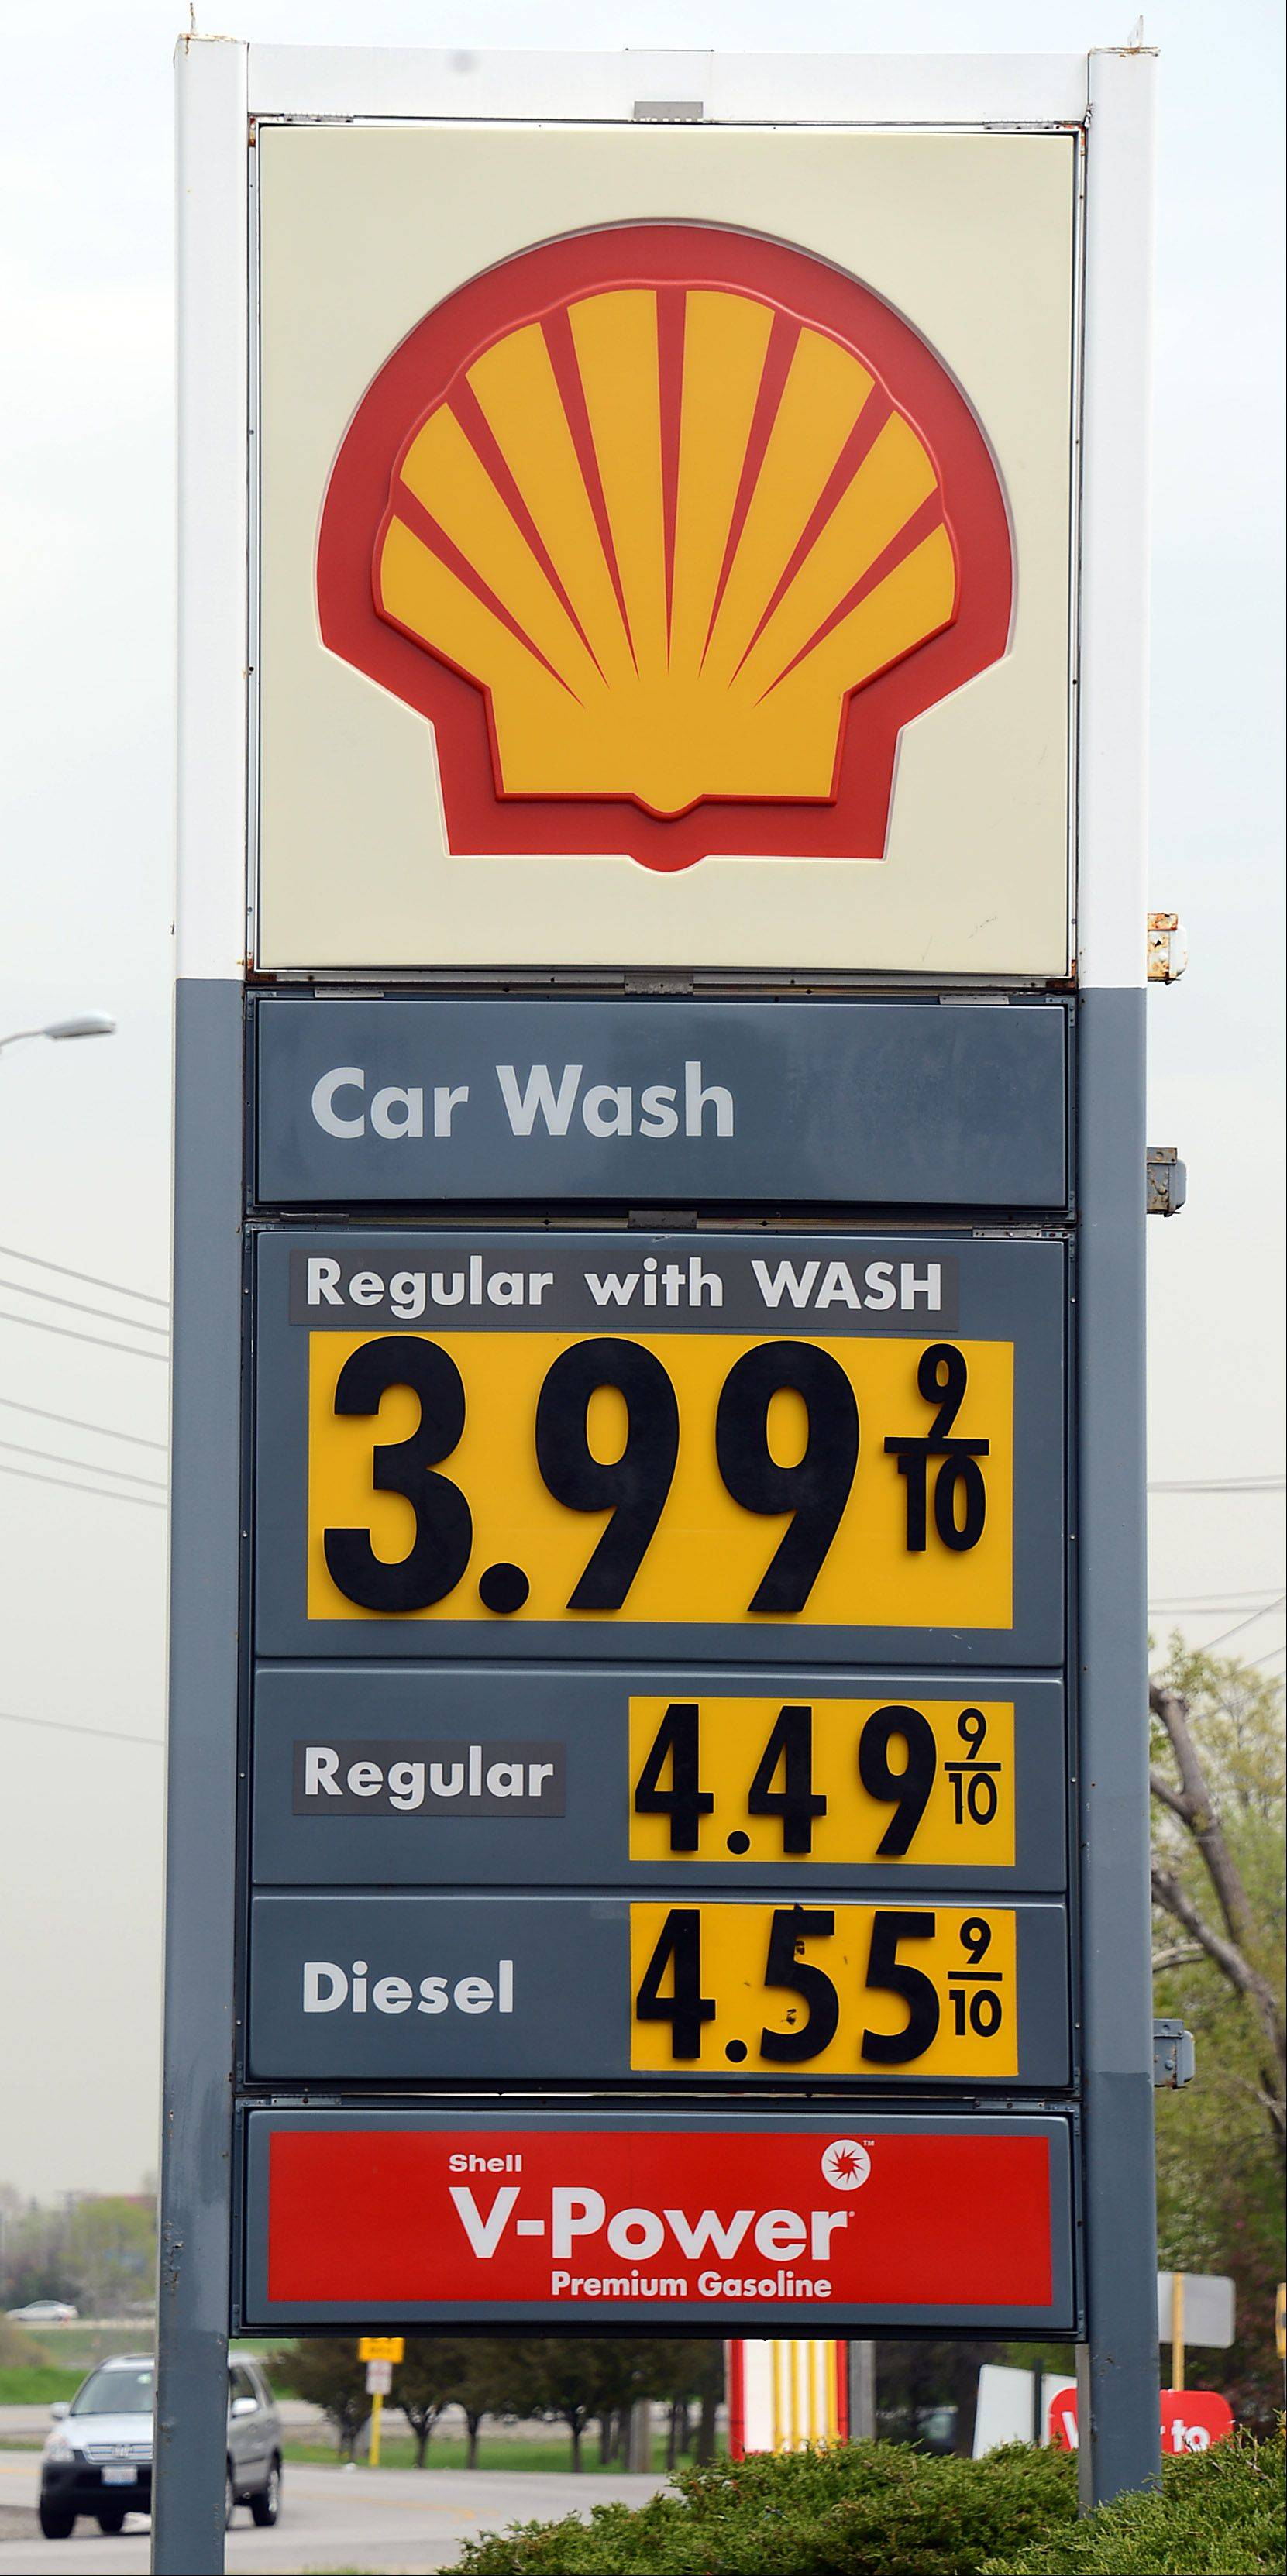 A gallon of regular unleaded was $4.49 without a wash at this Shell station in Palatine Thursday, far above national averages.